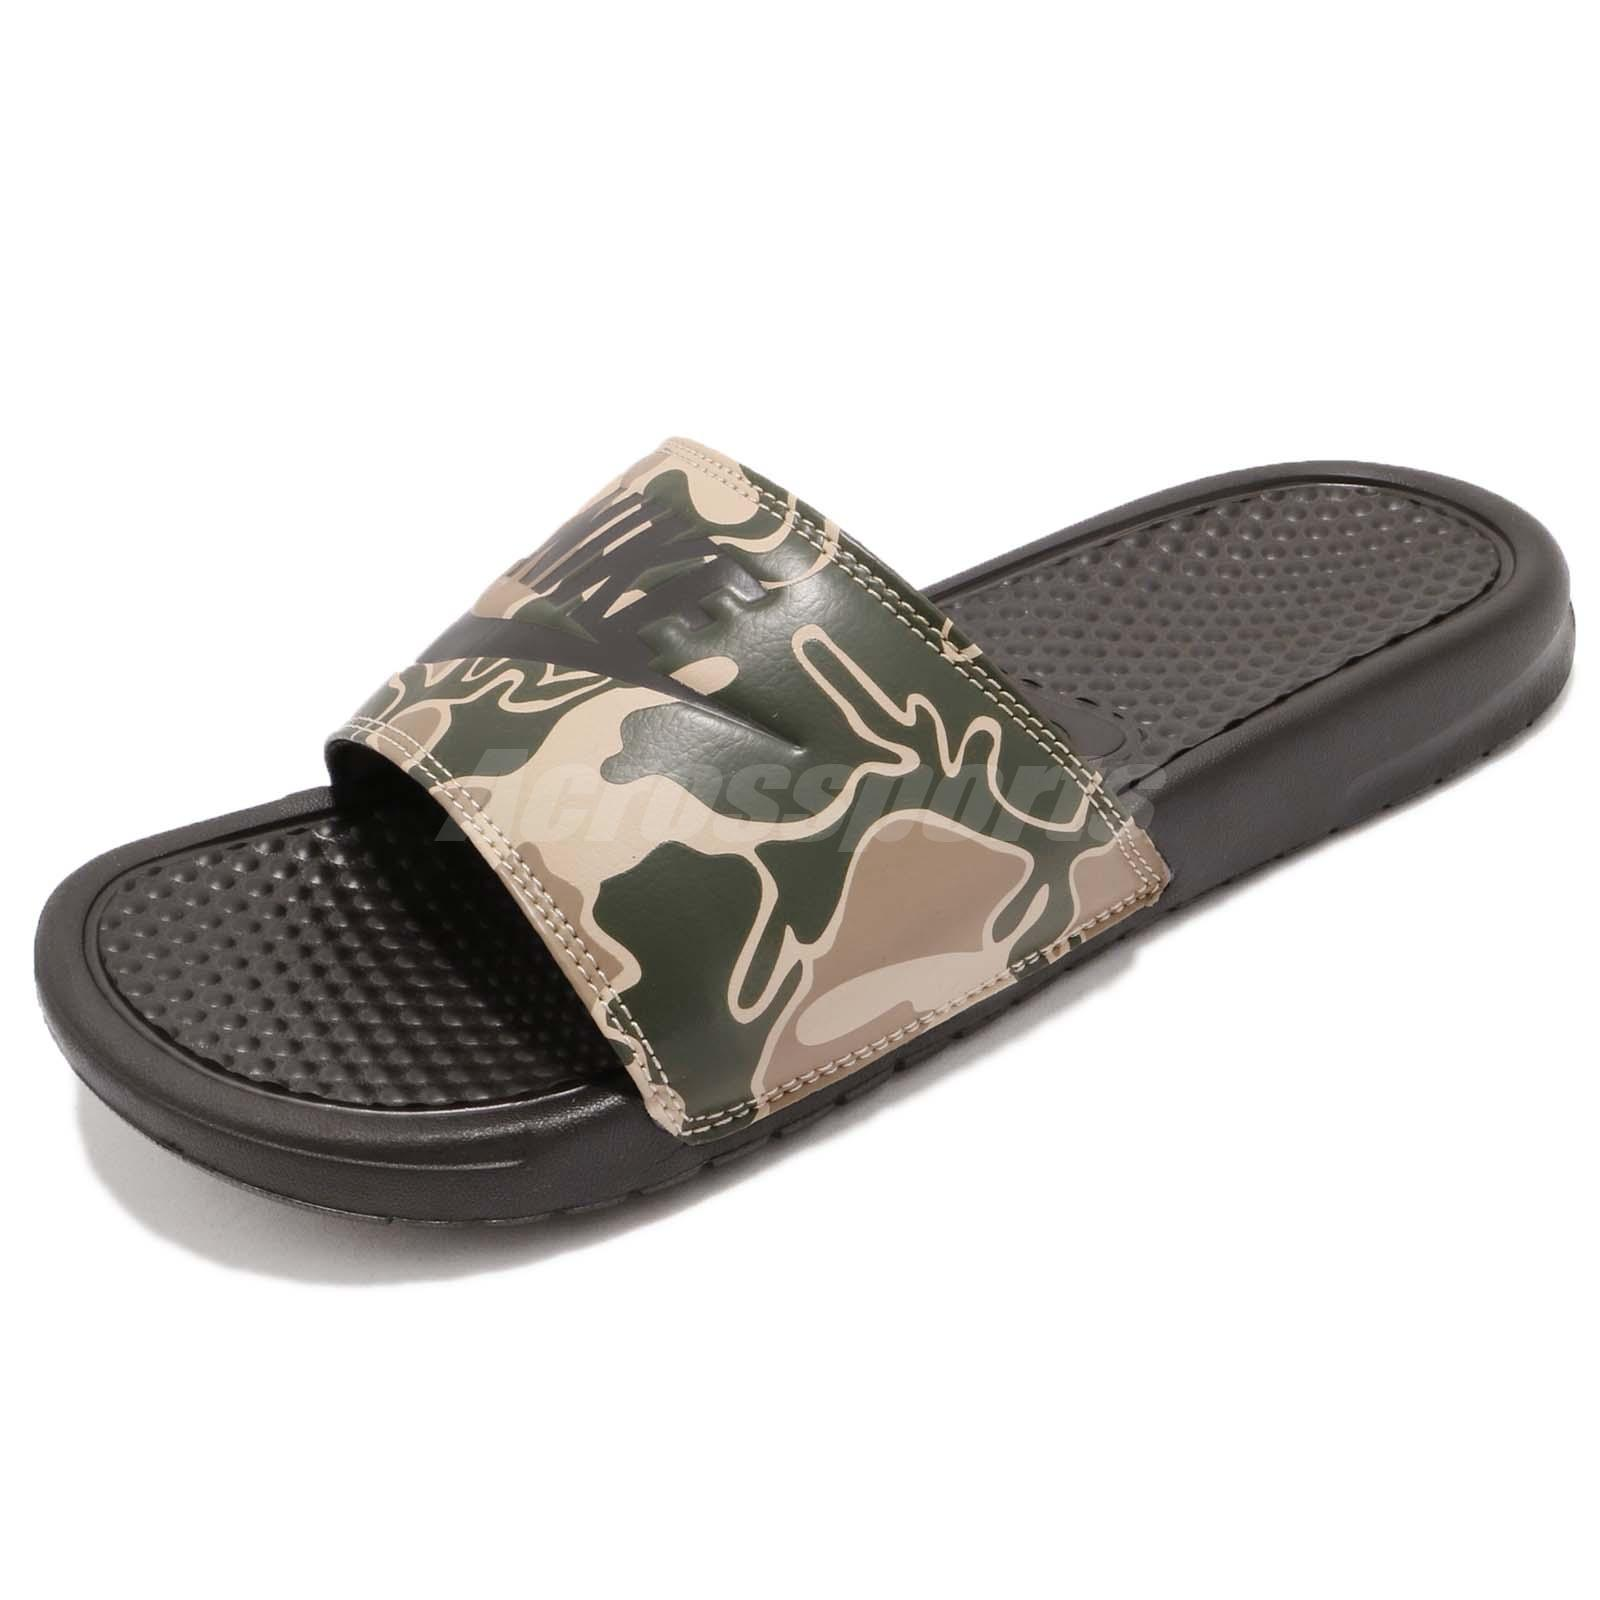 4ee4f97501a7 Nike Benassi JDI Print Velvet Brown Green Camo Men Sports Sandals 631261-202